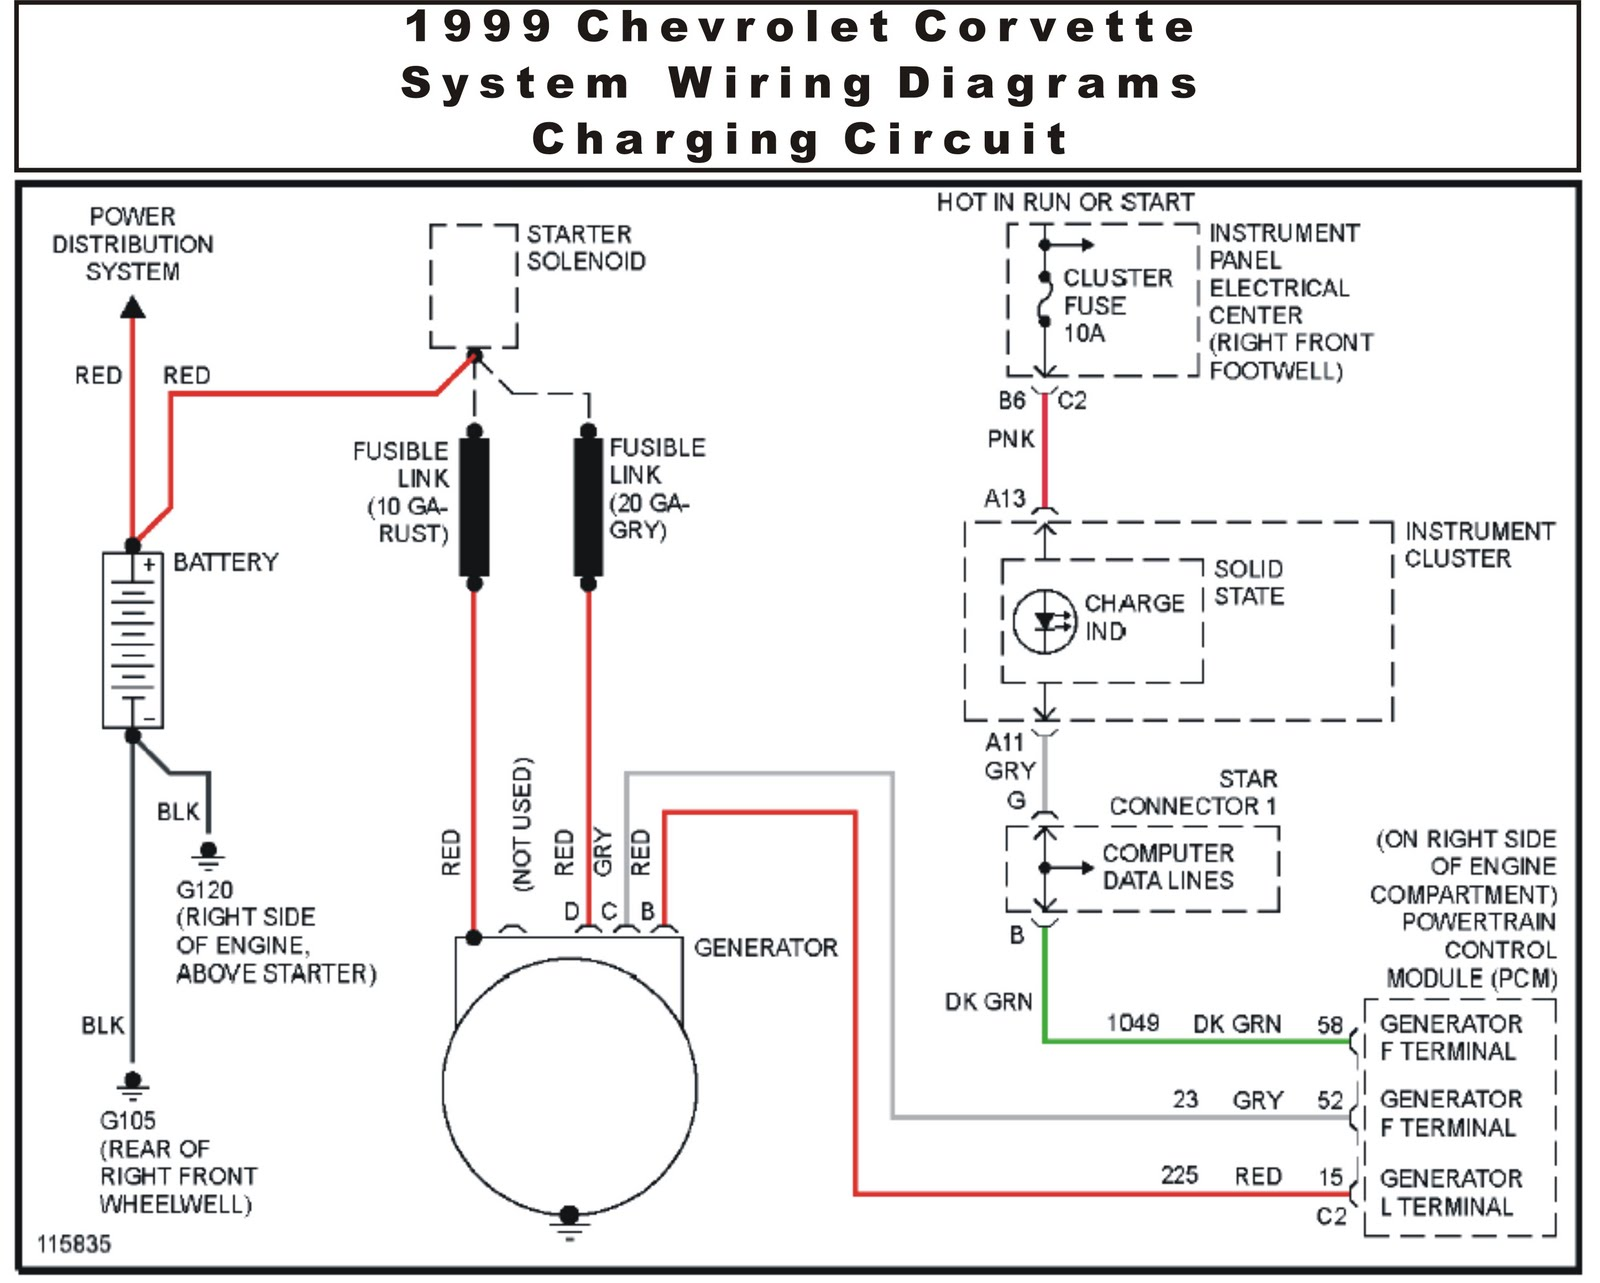 1999 Chevrolet Corvette System Wiring Diagrams Charging Circuit 1958 Instrument Cluster Diagram Wednesday May 25 This Post Is About The1999